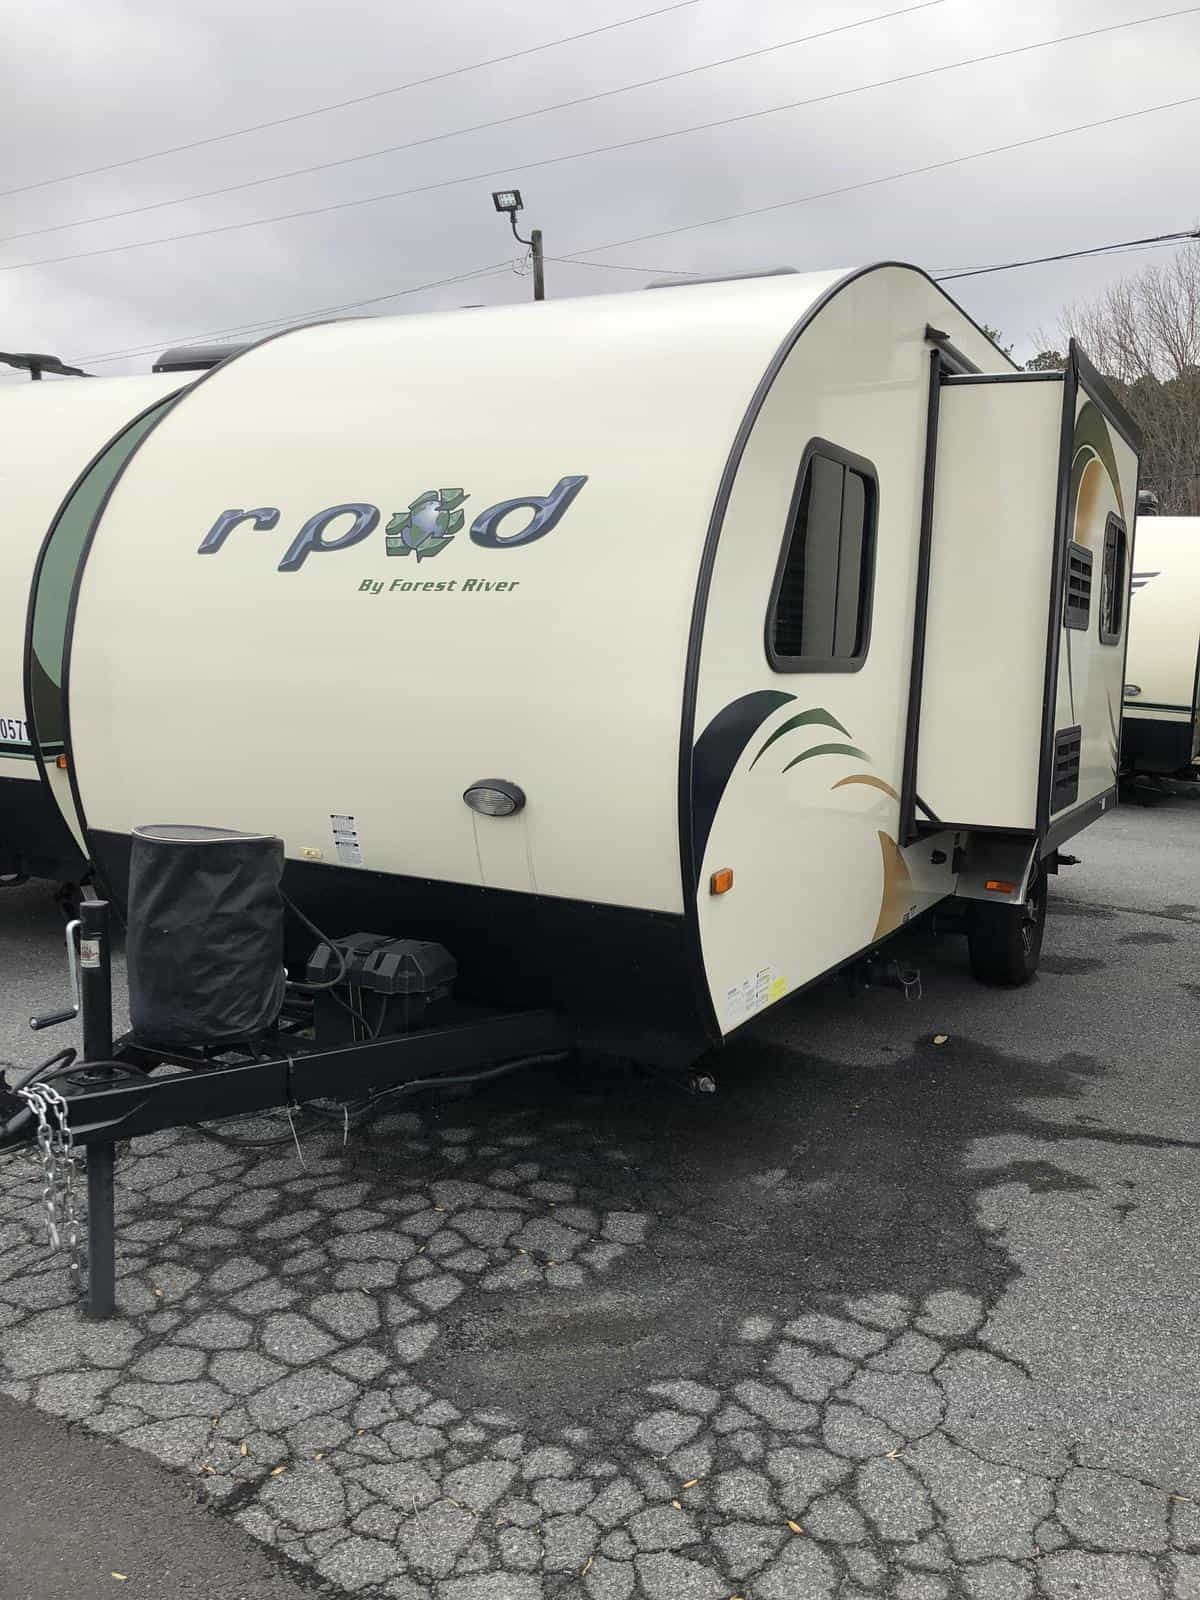 USED 2014 Rpod 178 - Three Way Campers